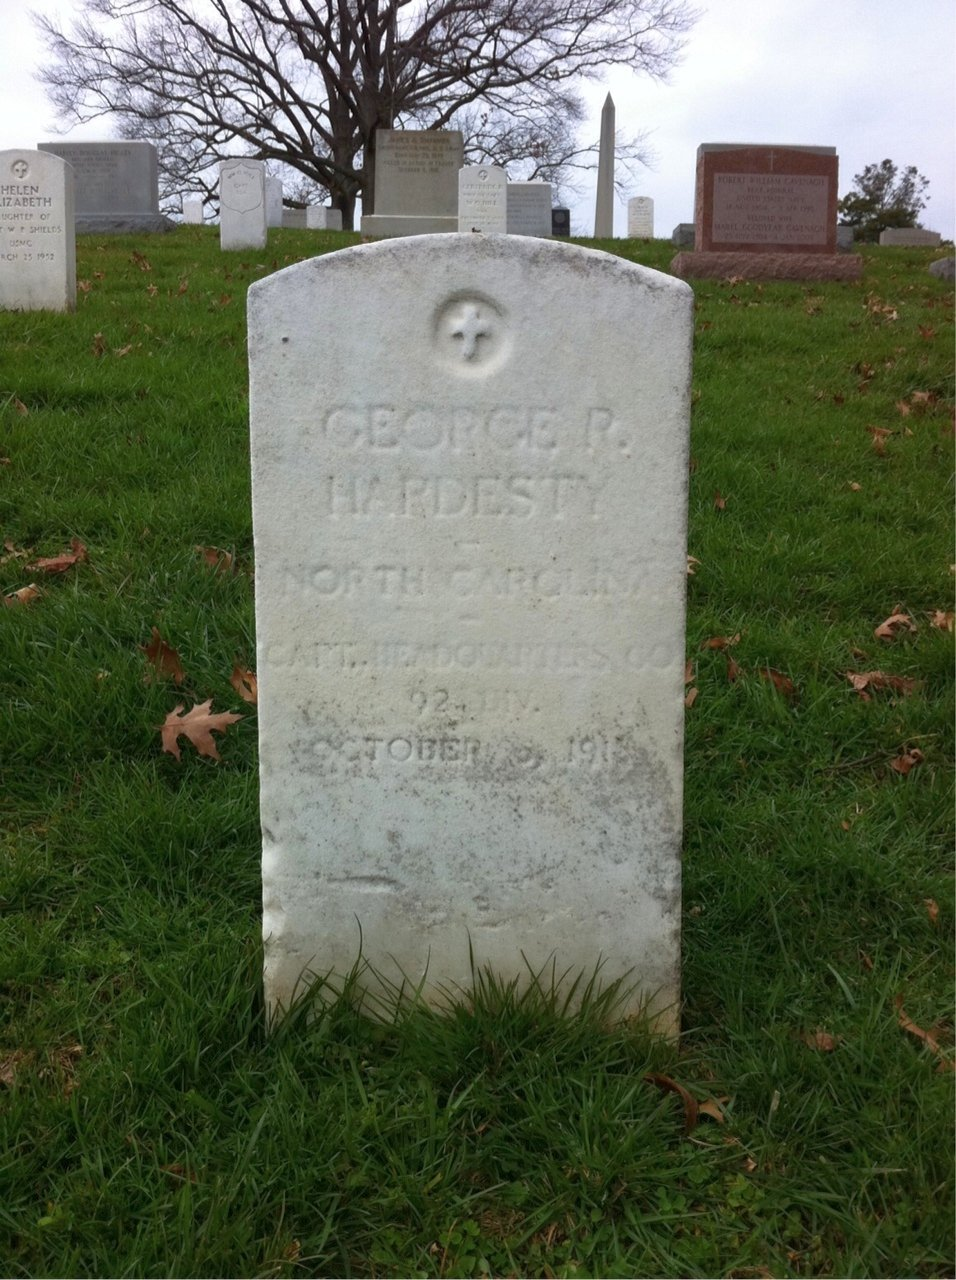 George Hardesty headstone Arlington